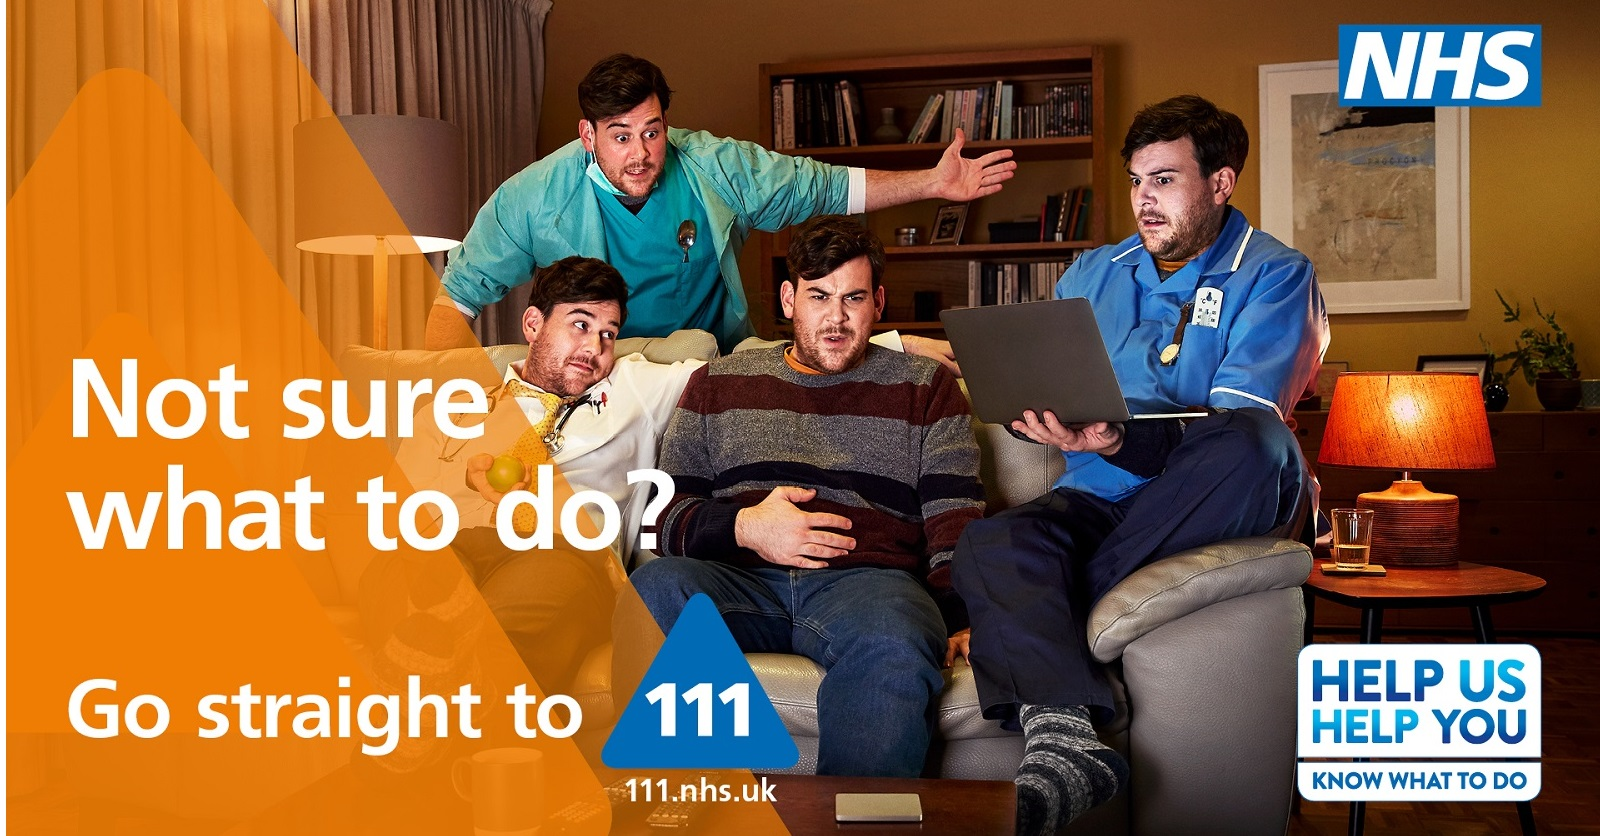 Not sure what to do? Go straight to NHS 111 88